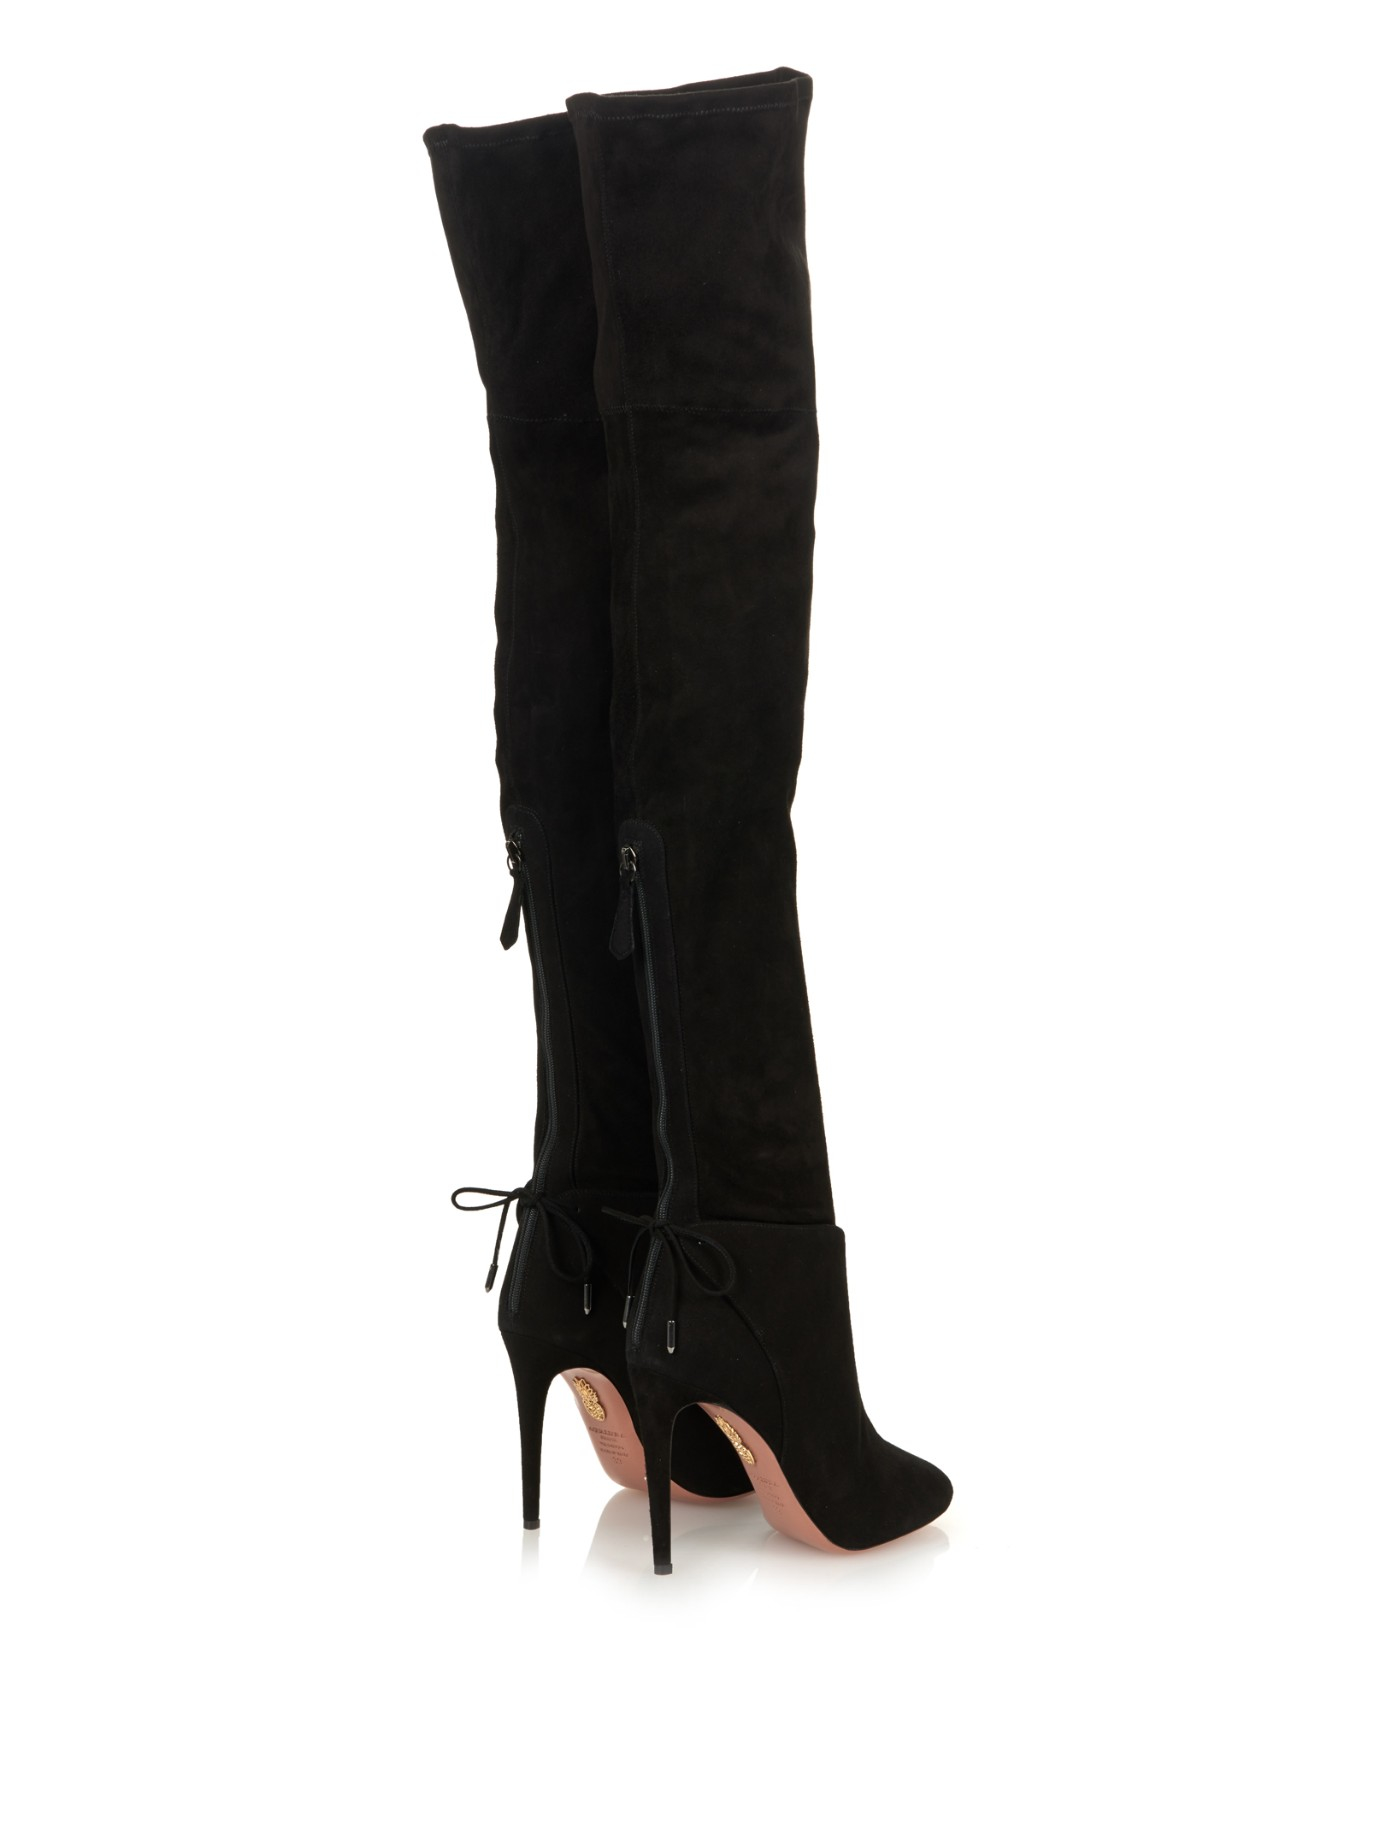 Aquazzura Giselle Suede Over-The-Knee Boots in Black | Lyst